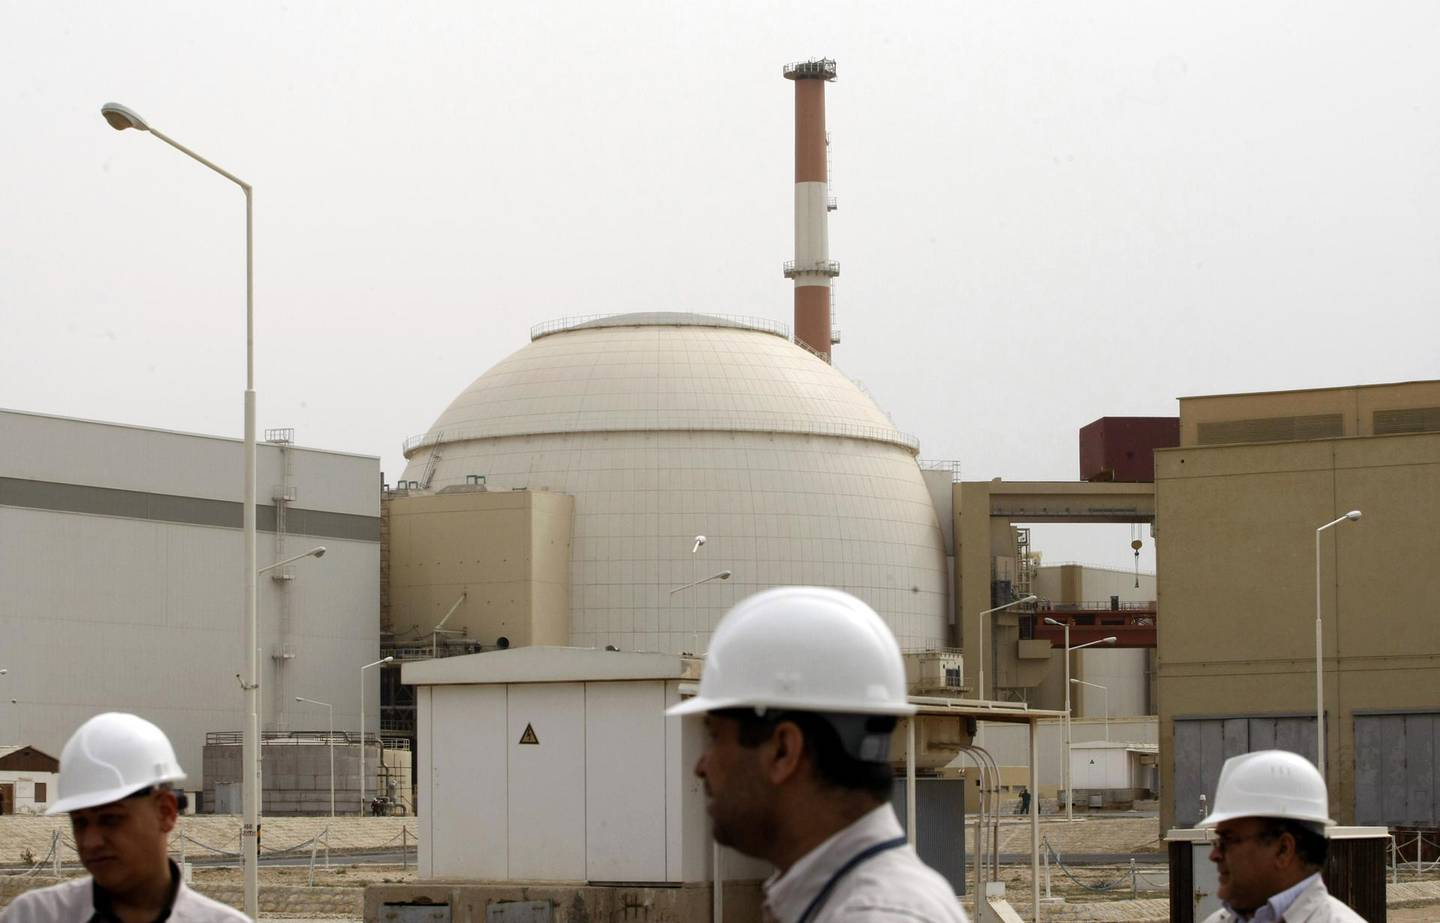 """(FILES) In this file photo taken on February 25, 2009 Iranian technicians walk outside the building housing the reactor of the Bushehr nuclear power plant, in the Iranian port town of Bushehr, 1200 kms south of Tehran. Iran will no longer respect limits it agreed on its enriched uranium and heavy water stocks under a 2015 nuclear deal with major powers, officials said on May 8, 2019. Iran's Supreme National Security Council said the measure was necessary to """"secure its rights and bring back balance"""" after Washington's abandonment of the agreement exactly one year ago on May 8, 2018. / AFP / AFP FILES / Behrouz MEHRI"""